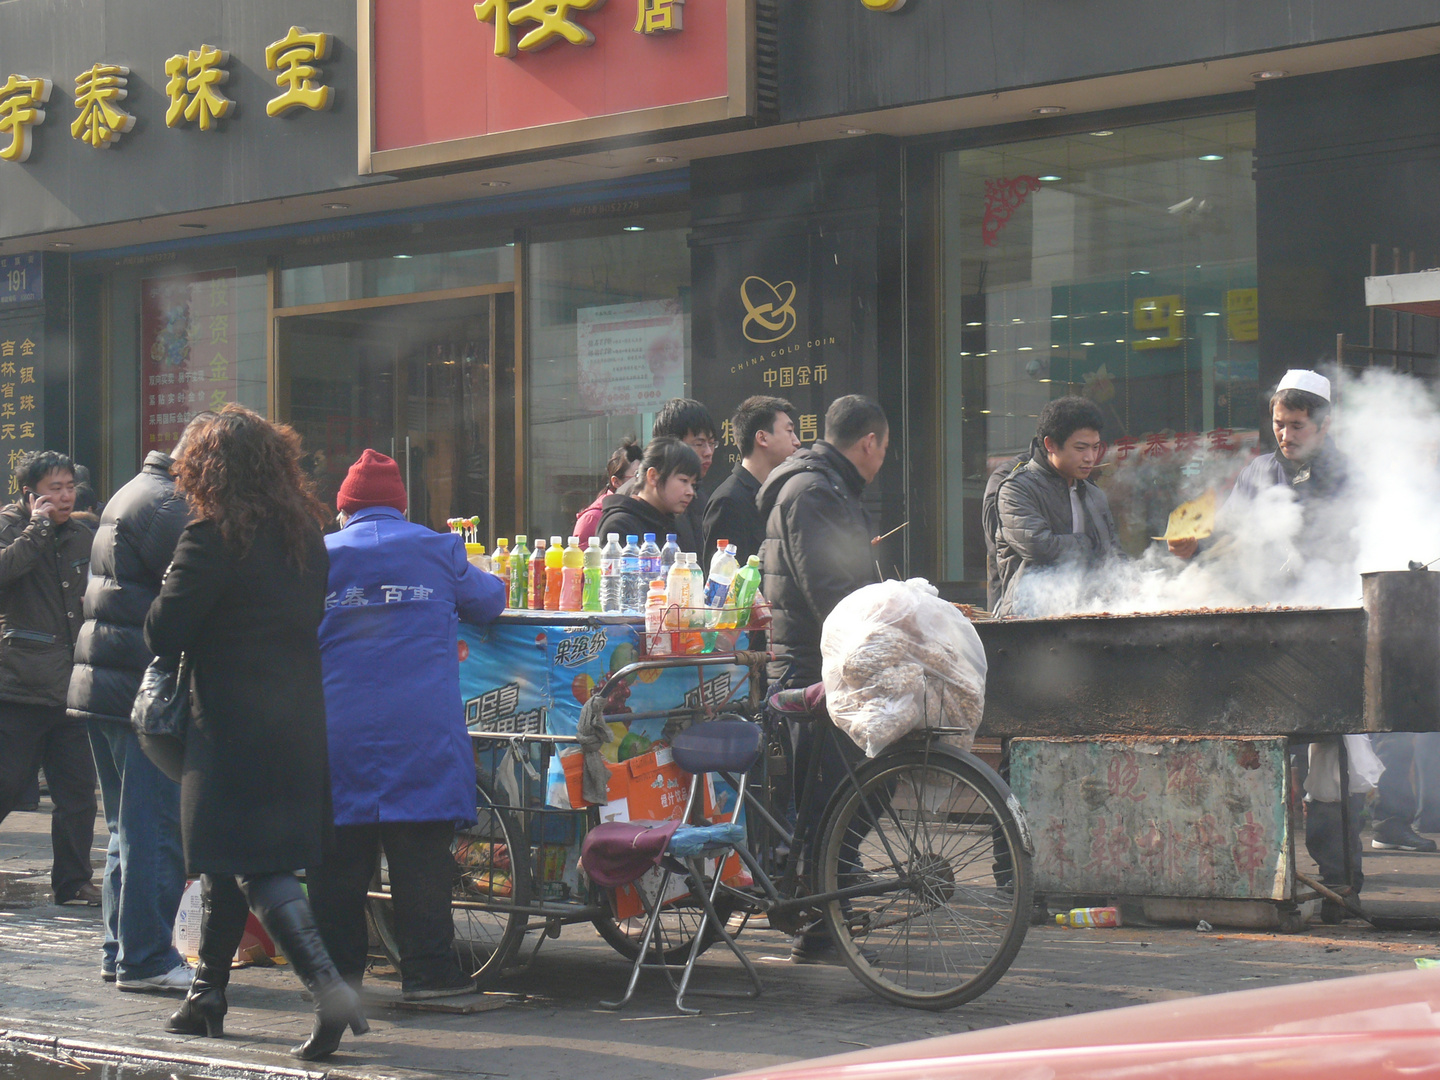 street view of changchun on a sunday